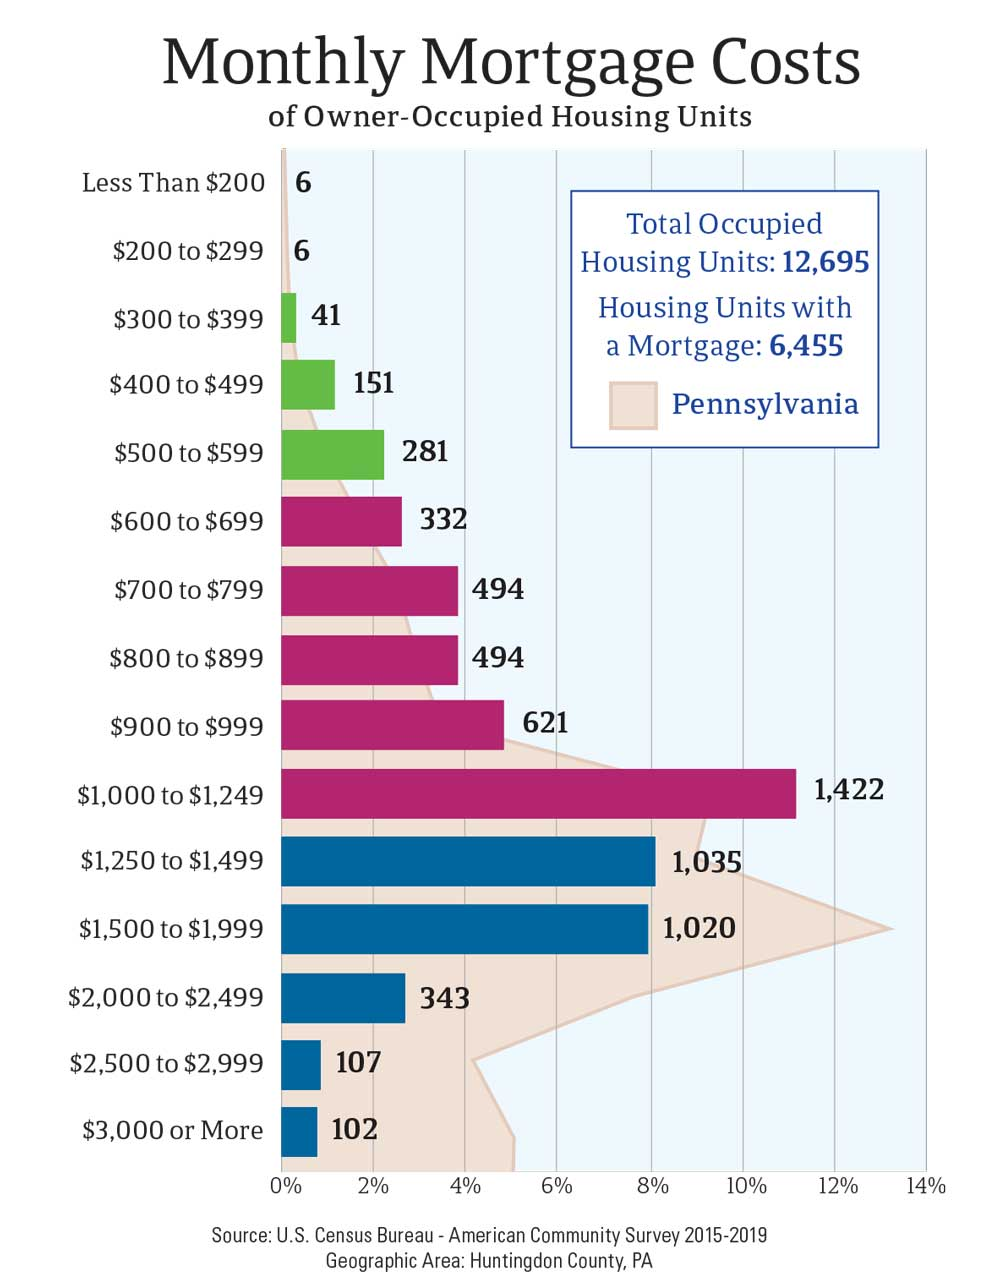 Monthly Mortgage Costs of Owner-Occupied Housing Units